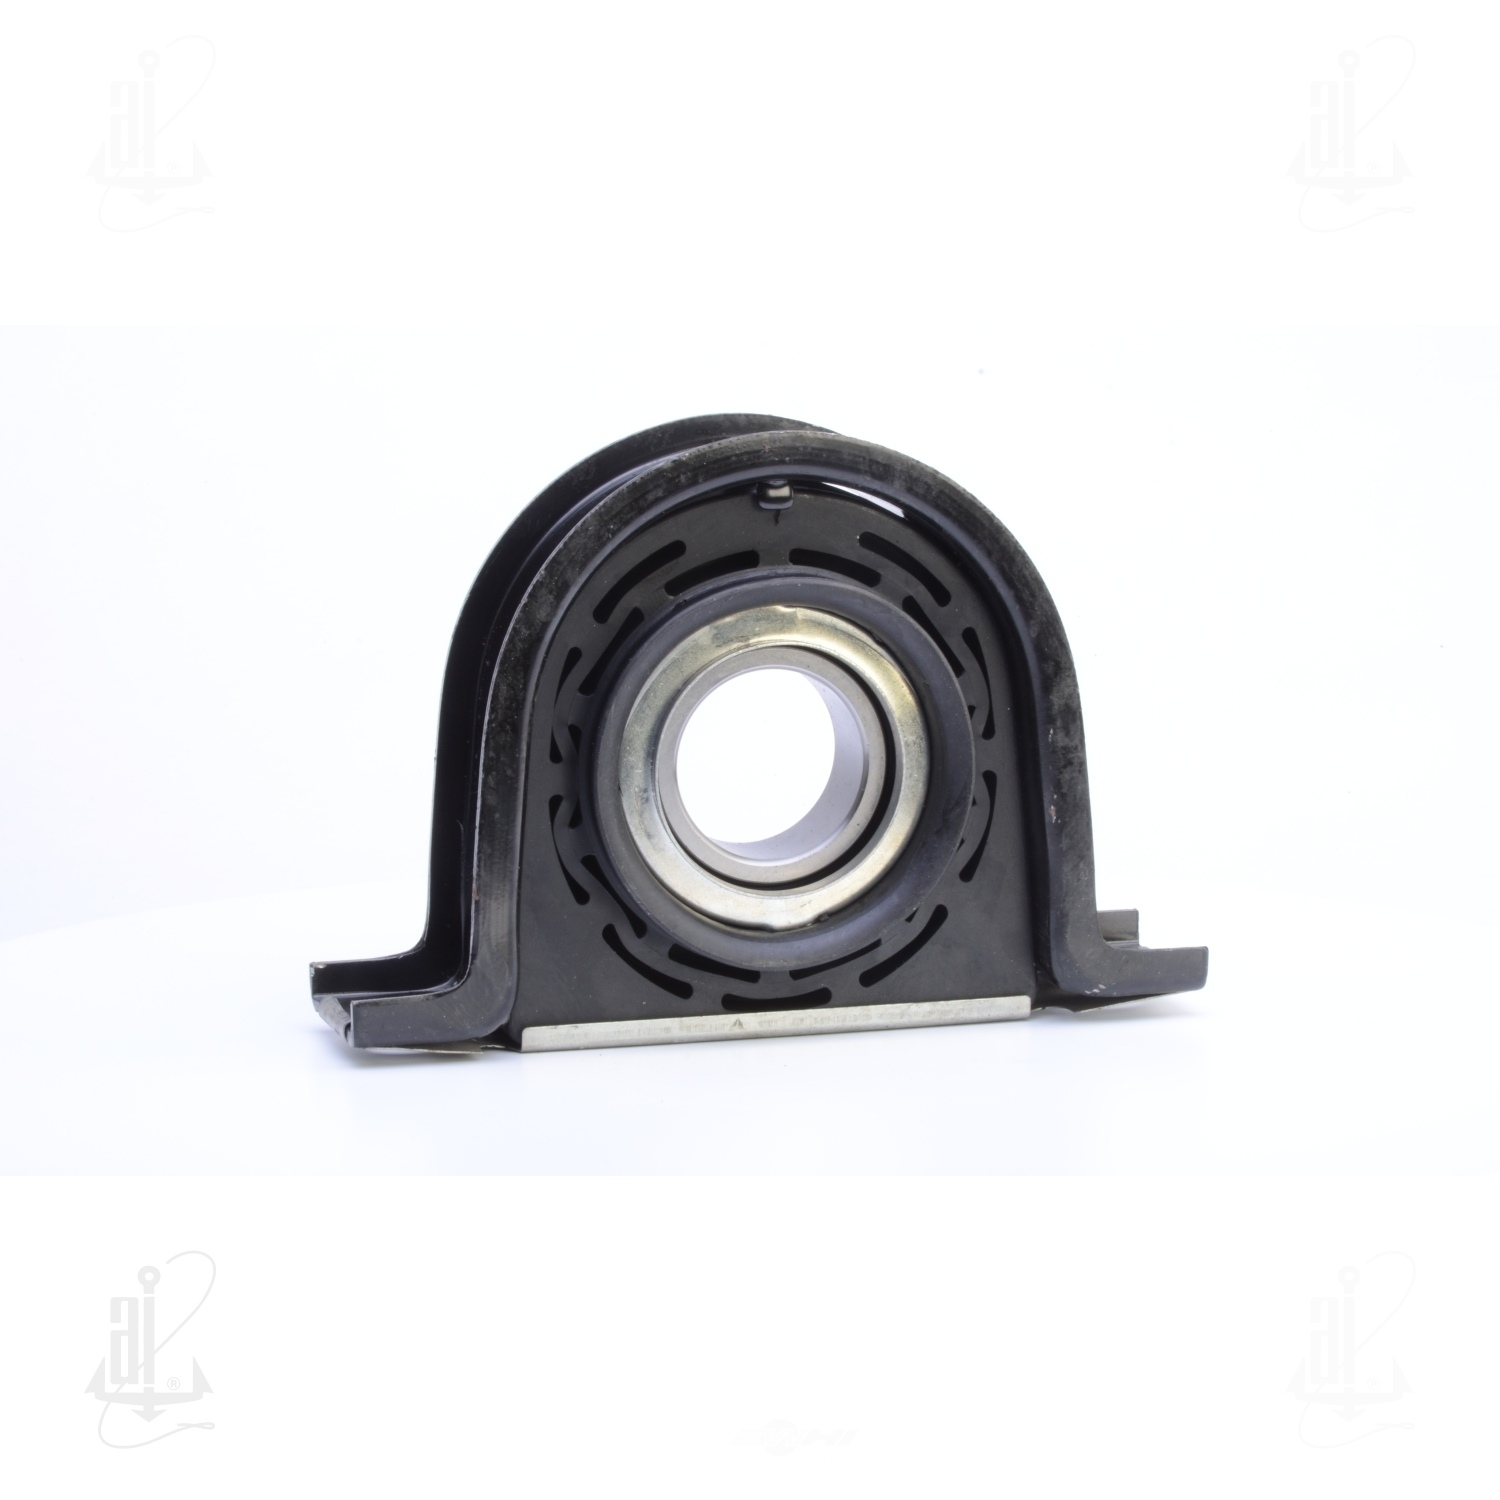 ANCHOR - Drive Shaft Center Support Bearing - ANH 6048